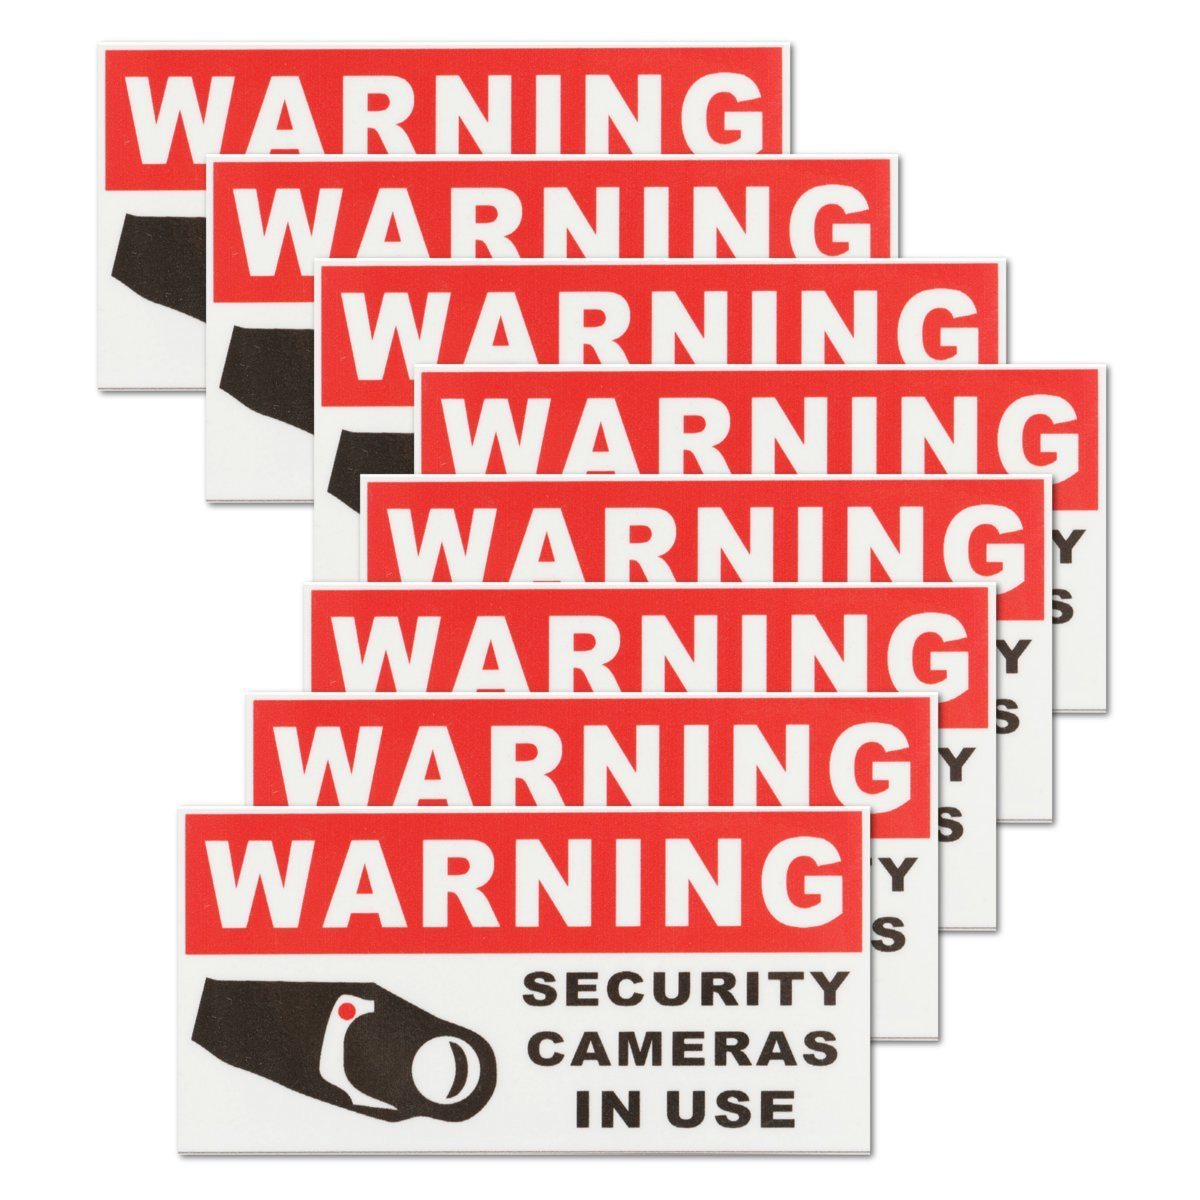 NEW 8Pcs SECURITY CAMERA IN USE Waterproof Self-adhensive Warning Stickers Safety Signs Decal image